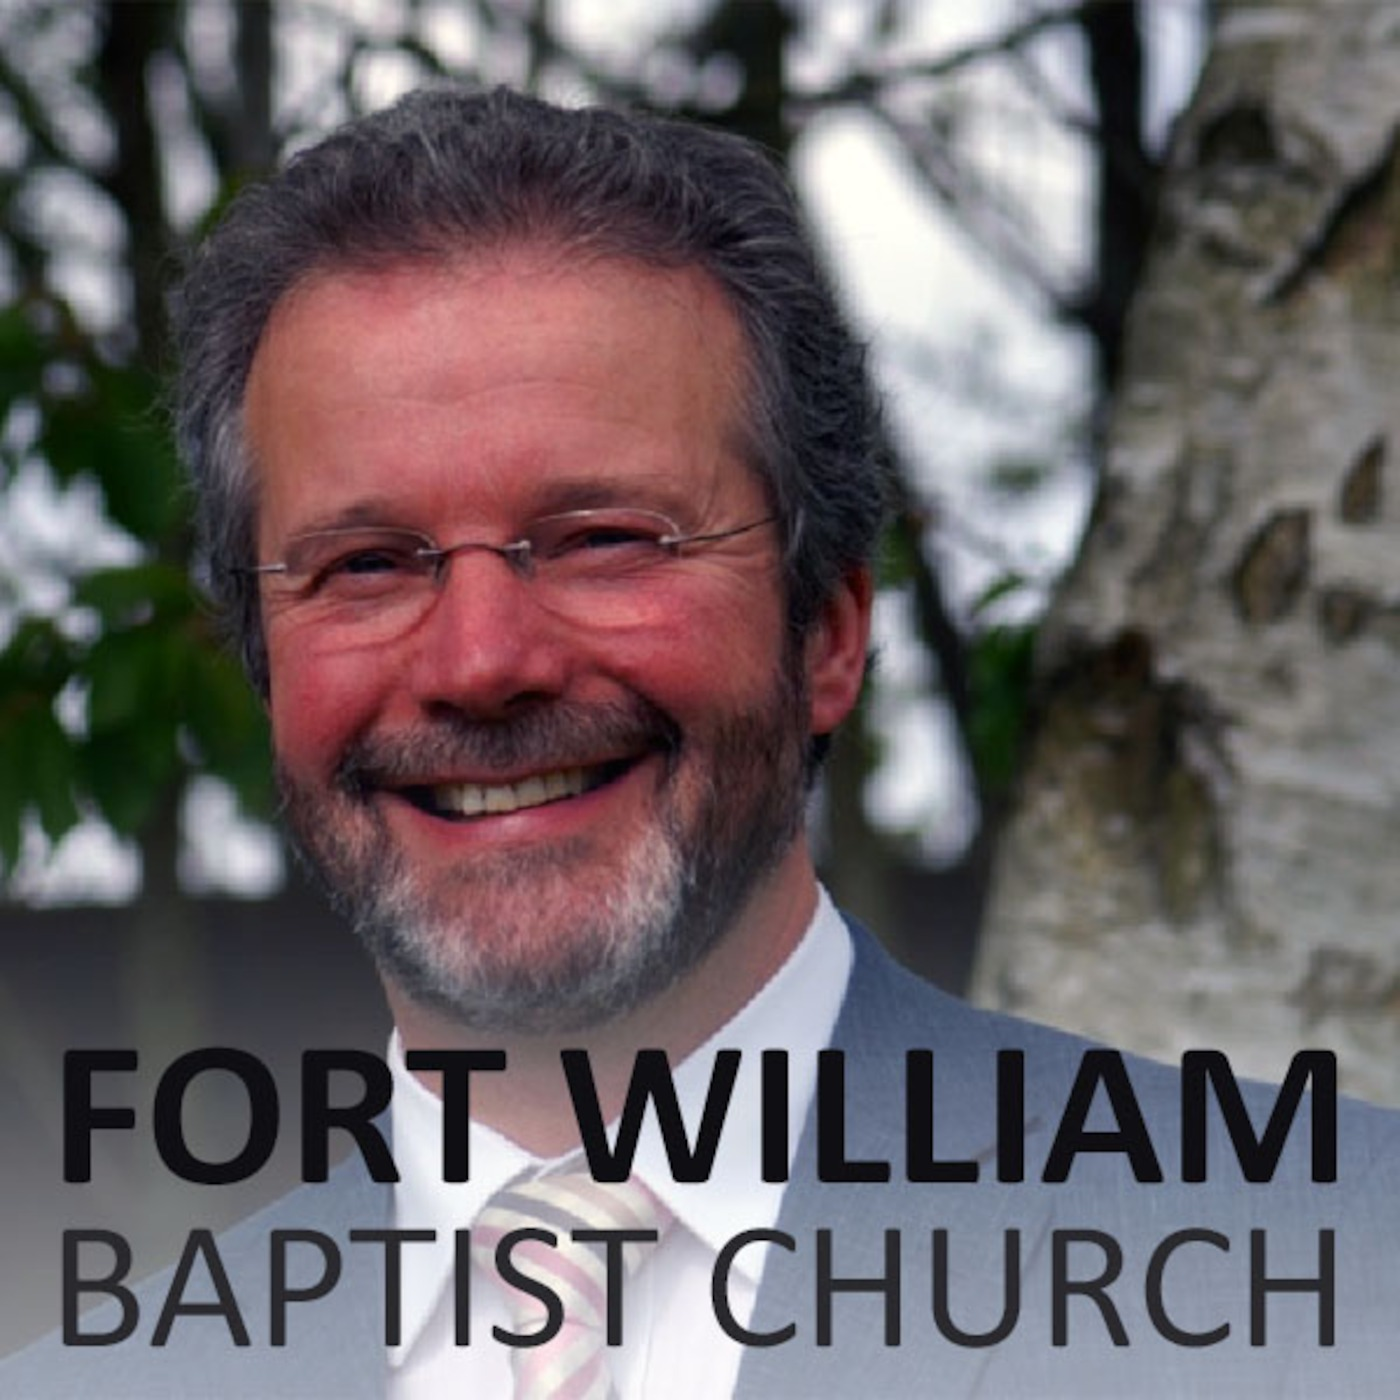 Fort William Baptist Church Sermon Podcast